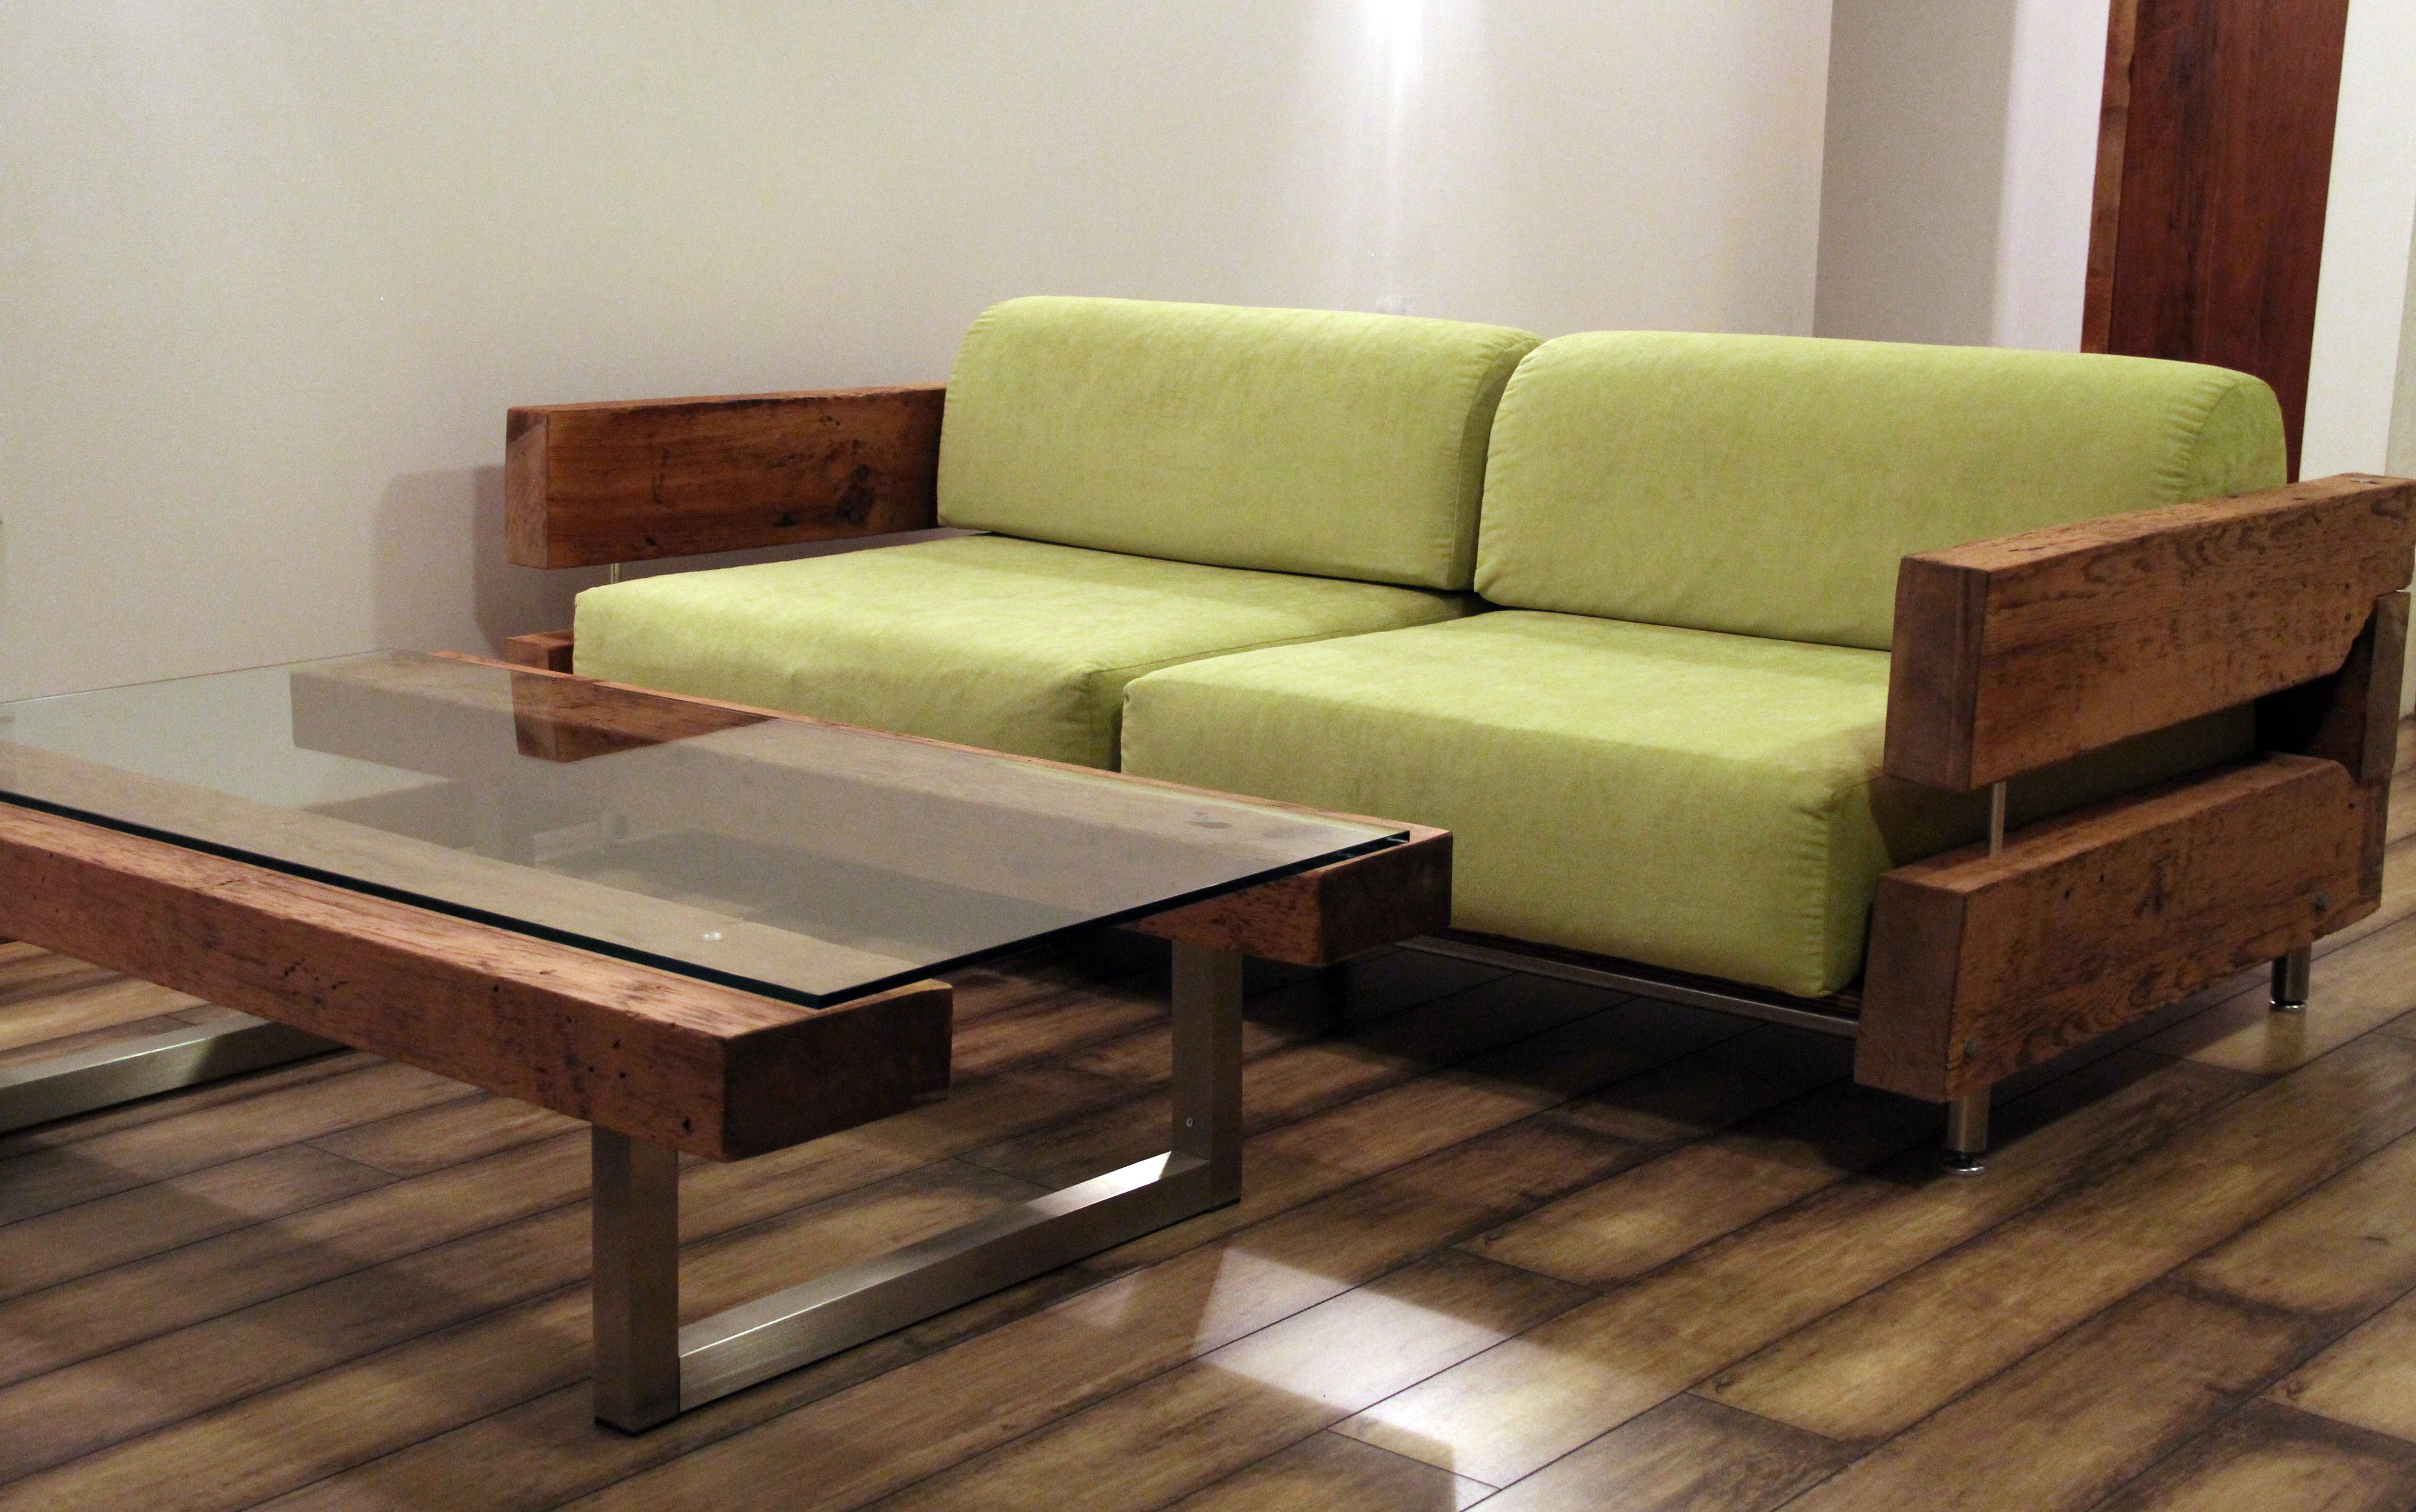 sofa tables pinterest floating in small living room reclaimed wood couch and coffee table by ticino design www